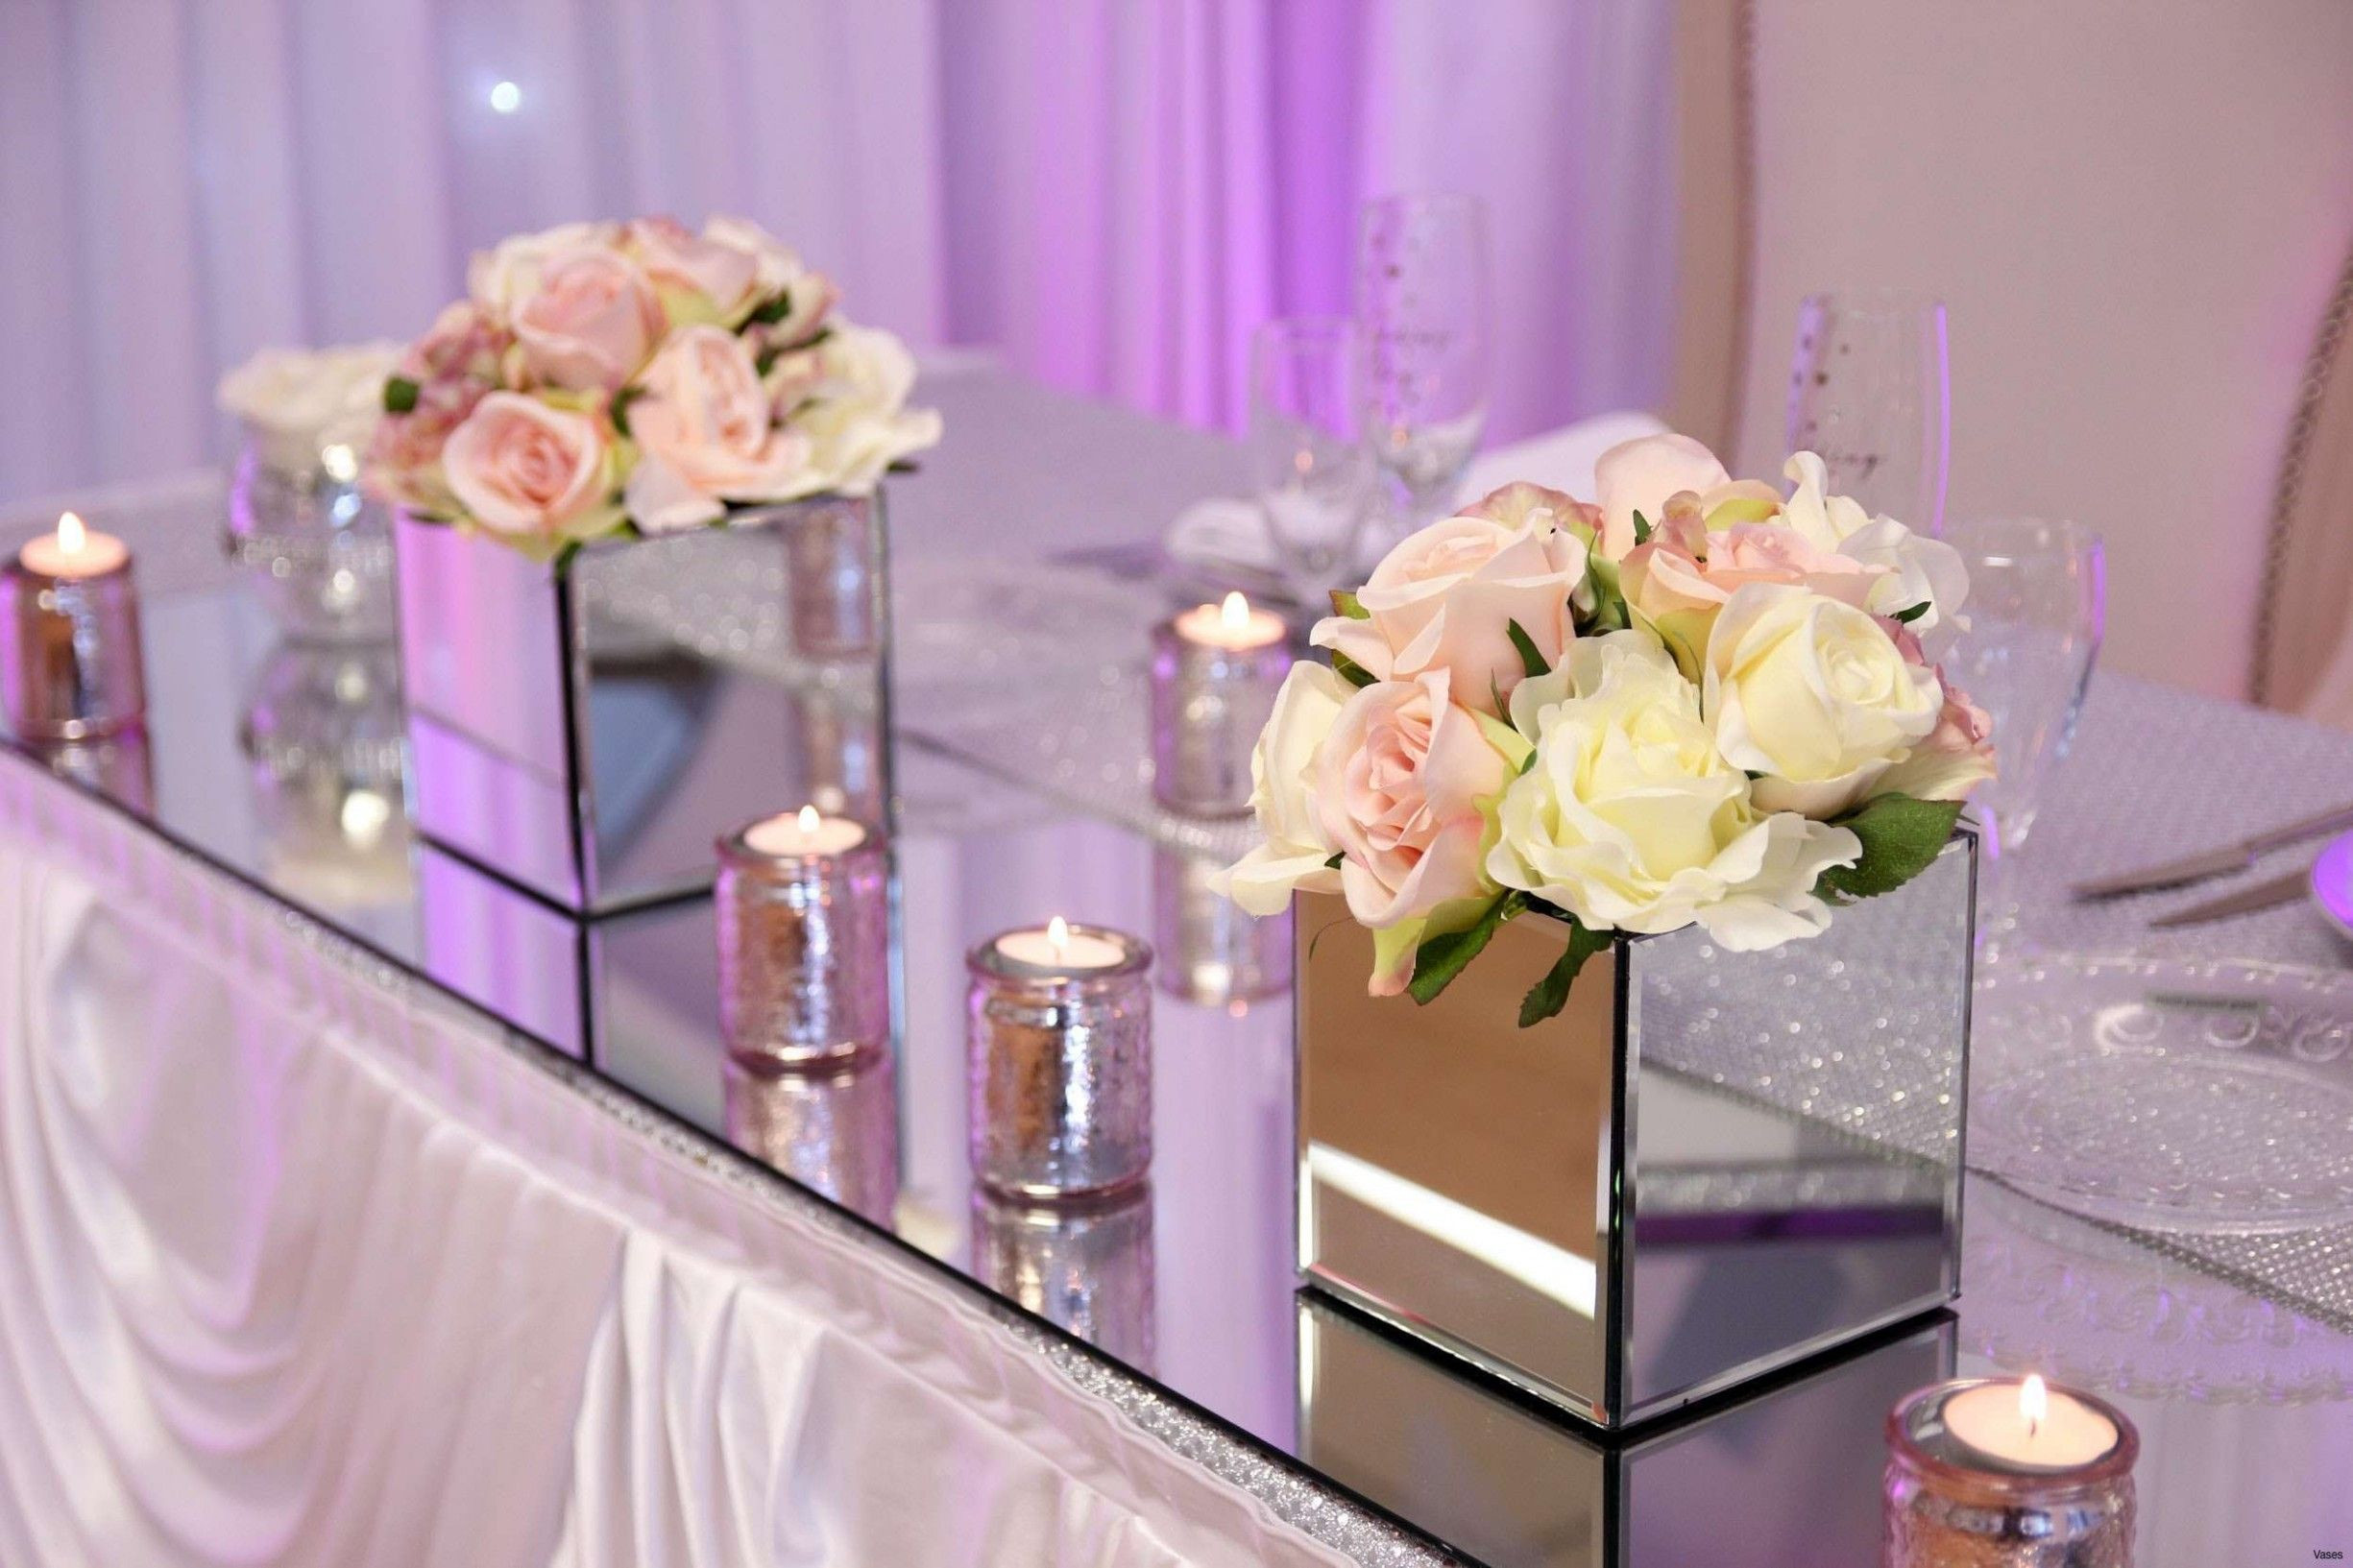 flowers in vase with lights of flower vase ideas elegant mirrored square vase 3h vases mirror table for flower vase ideas elegant mirrored square vase 3h vases mirror table decorationi 0d weddings